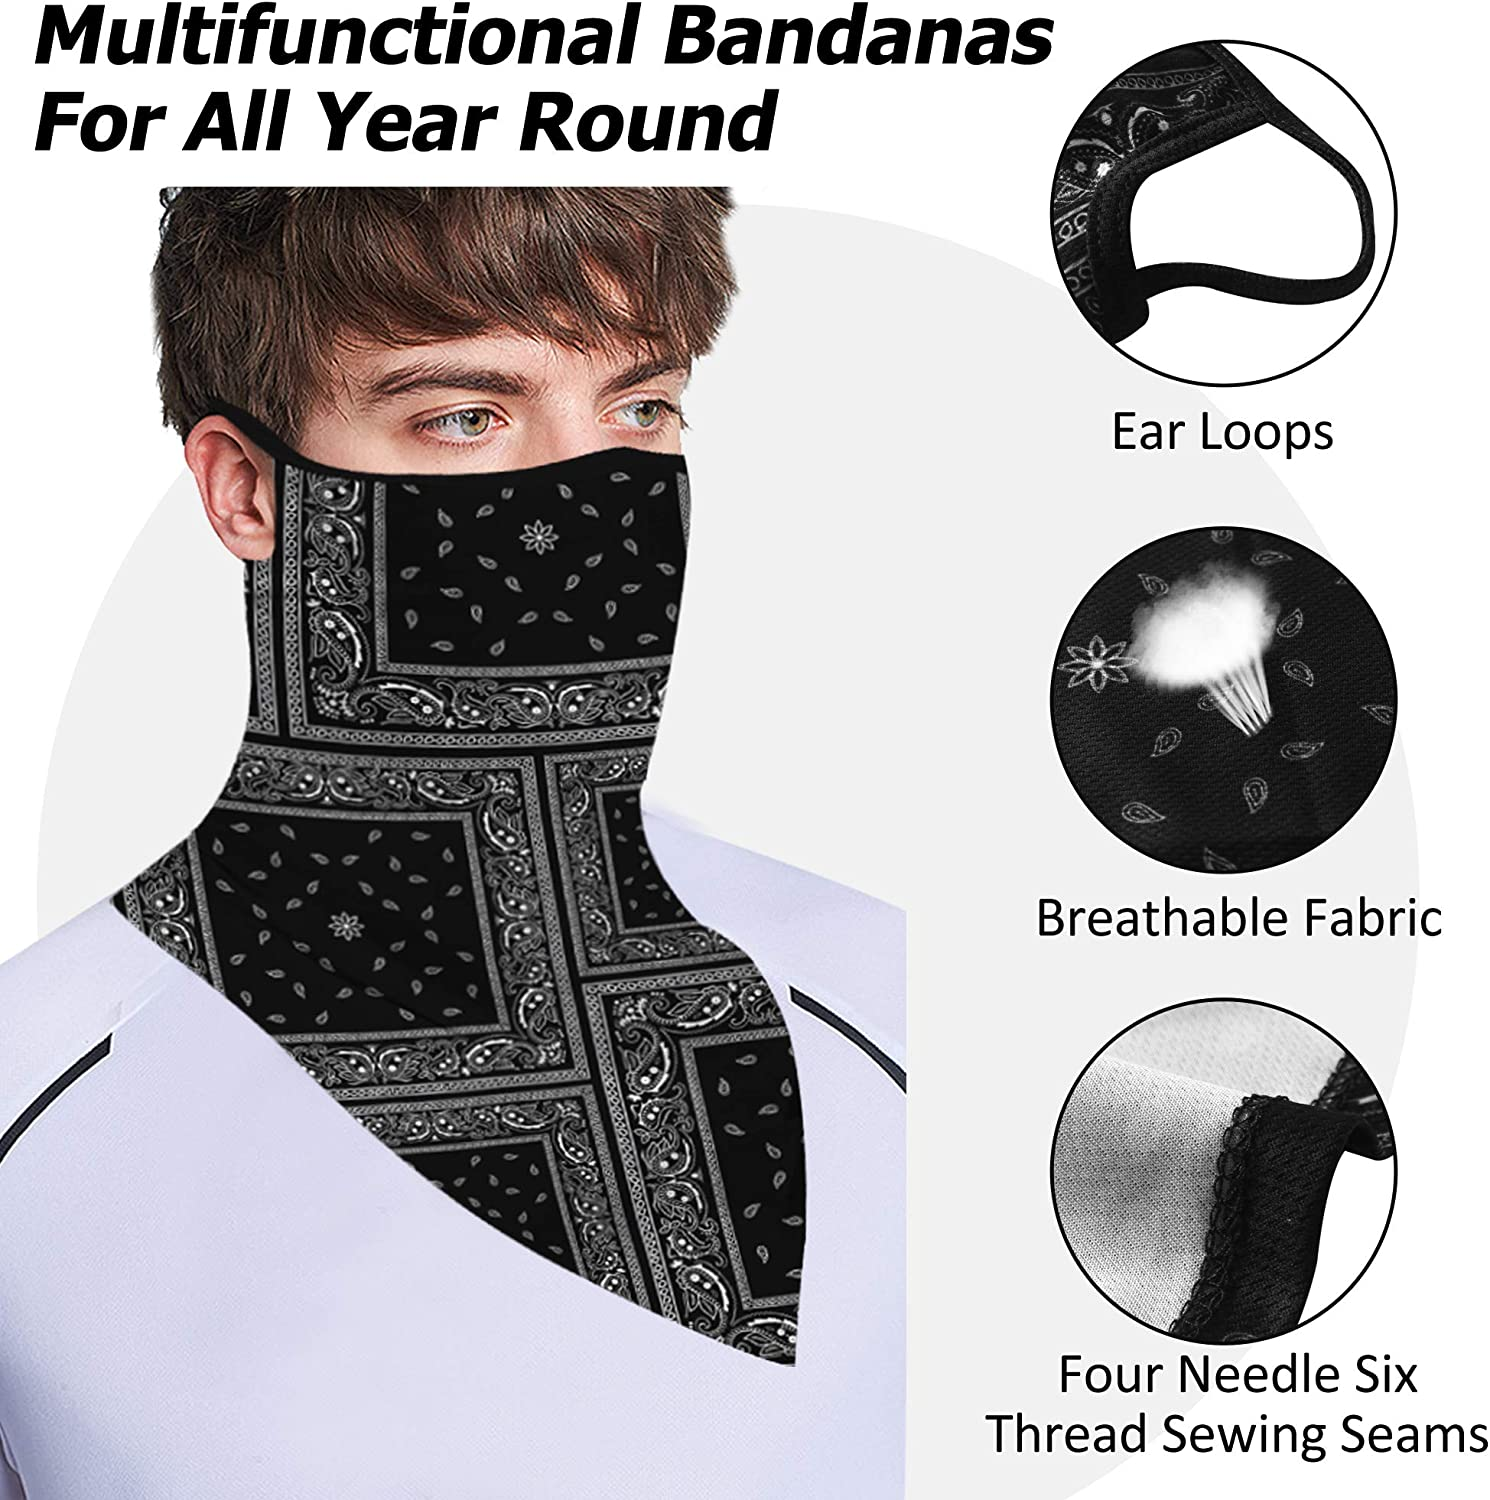 Changning Men Women Neck Gaiter Bandanas with Ear Loops Sun UV Protection Balaclava Running Sports Face Mask Face Cover Headwear for Cycling Hiking